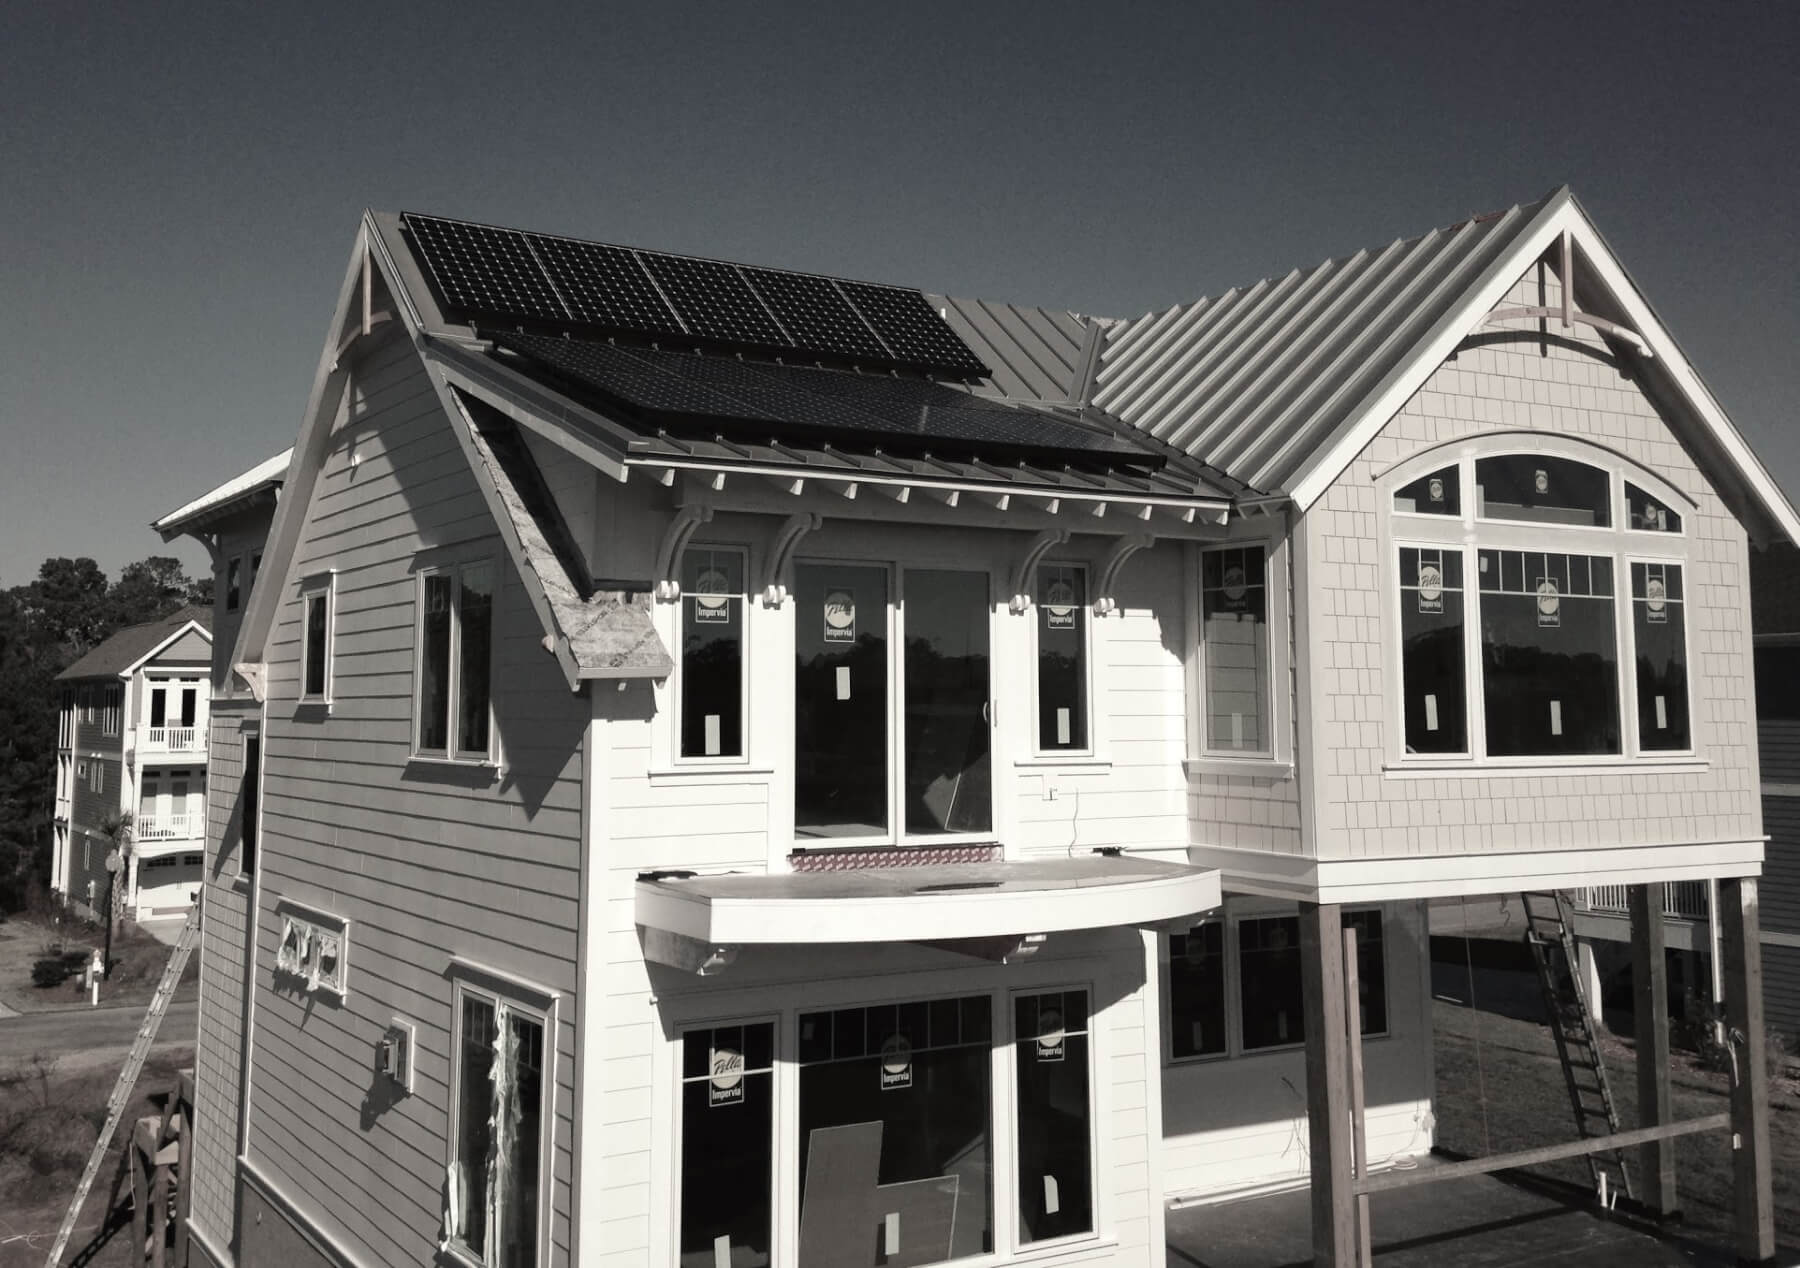 Solar For New Construction How Does Power Work In A Residential Home Why Is It That All Developments Have Higher Adoption Rate Of